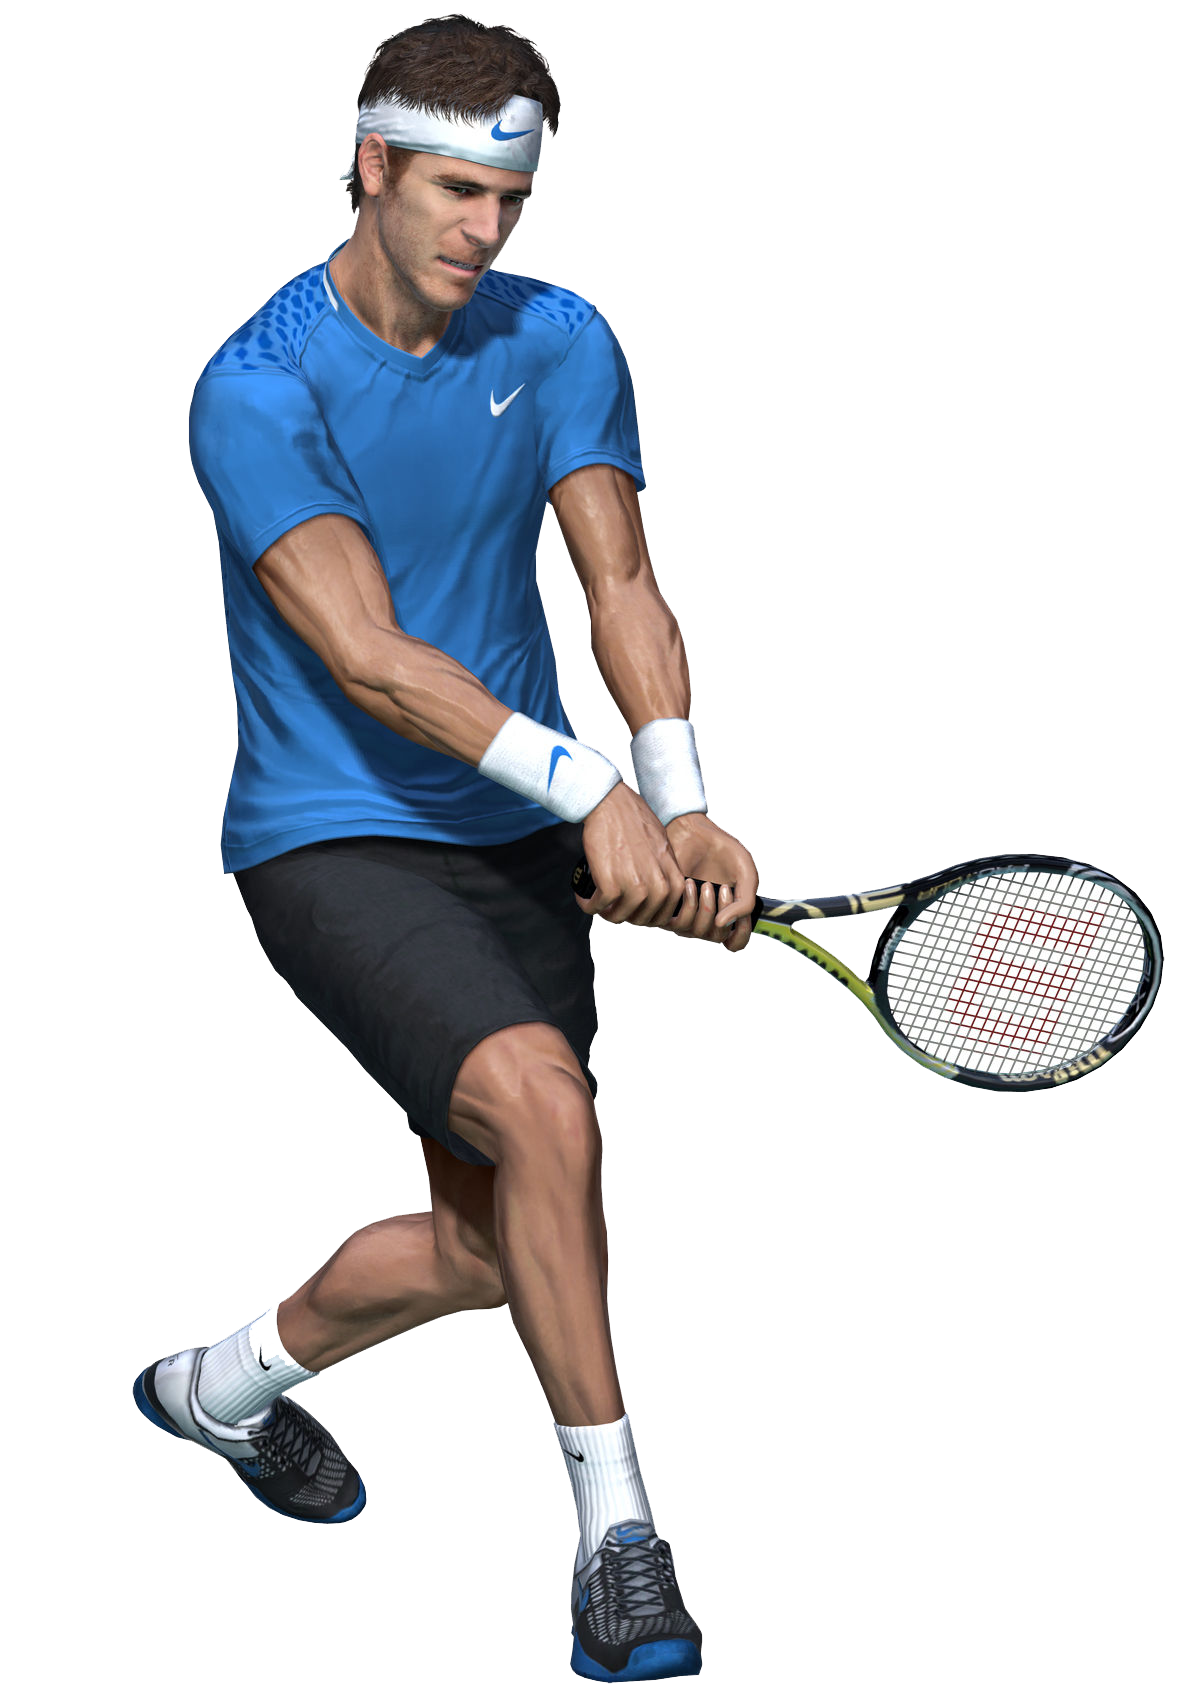 Tennis Png Clipart Web Icons Png